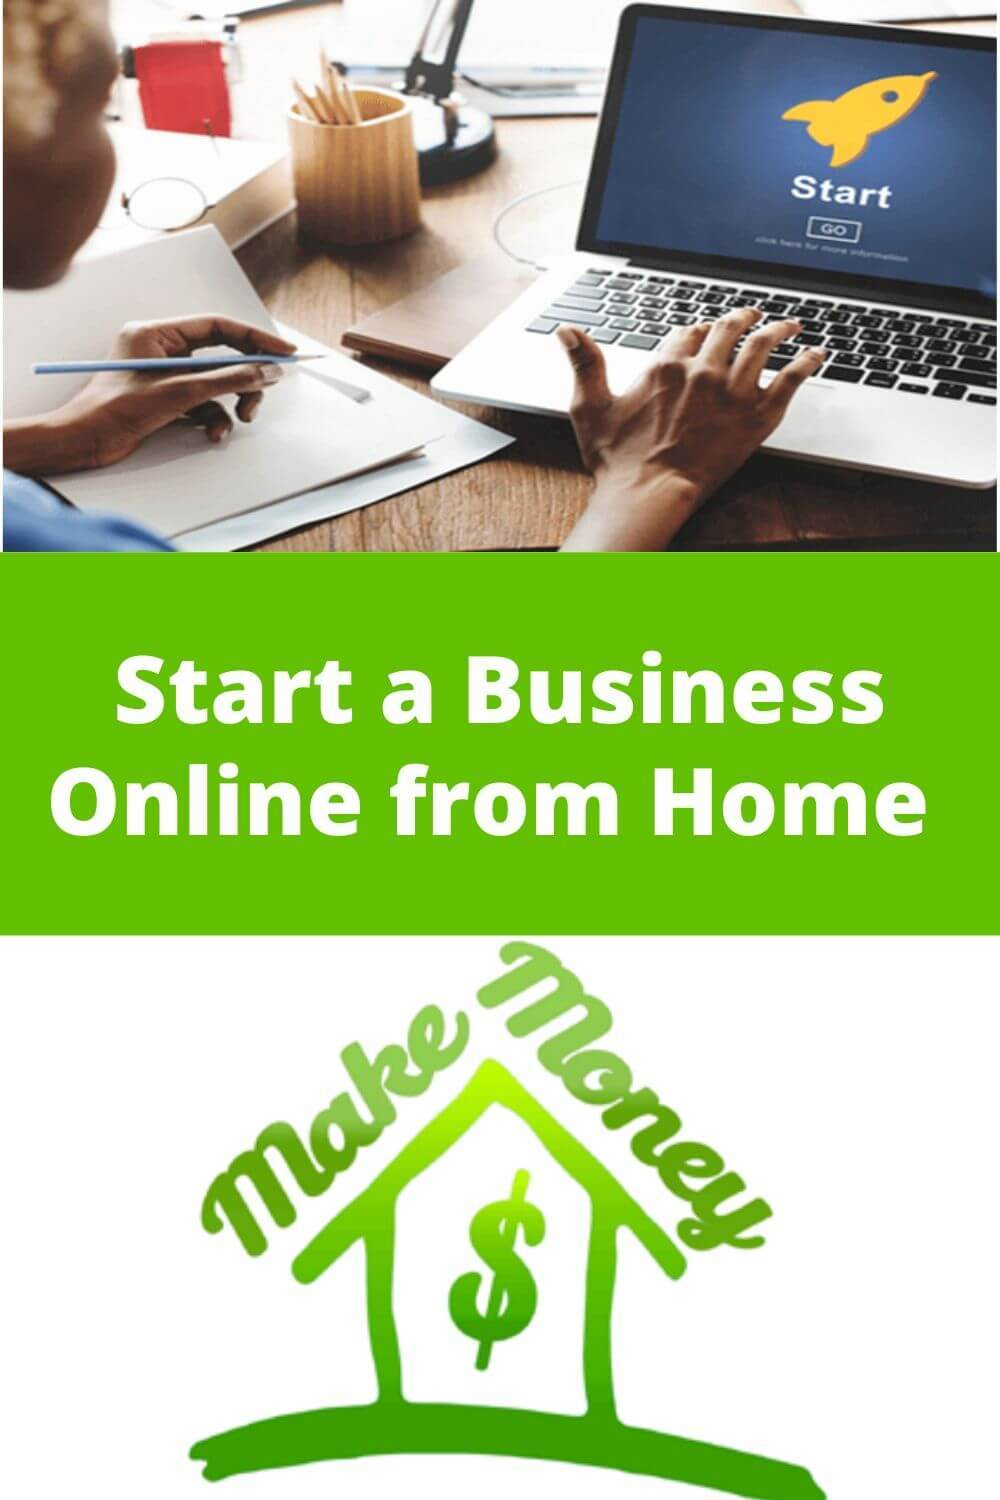 Start a business online from home